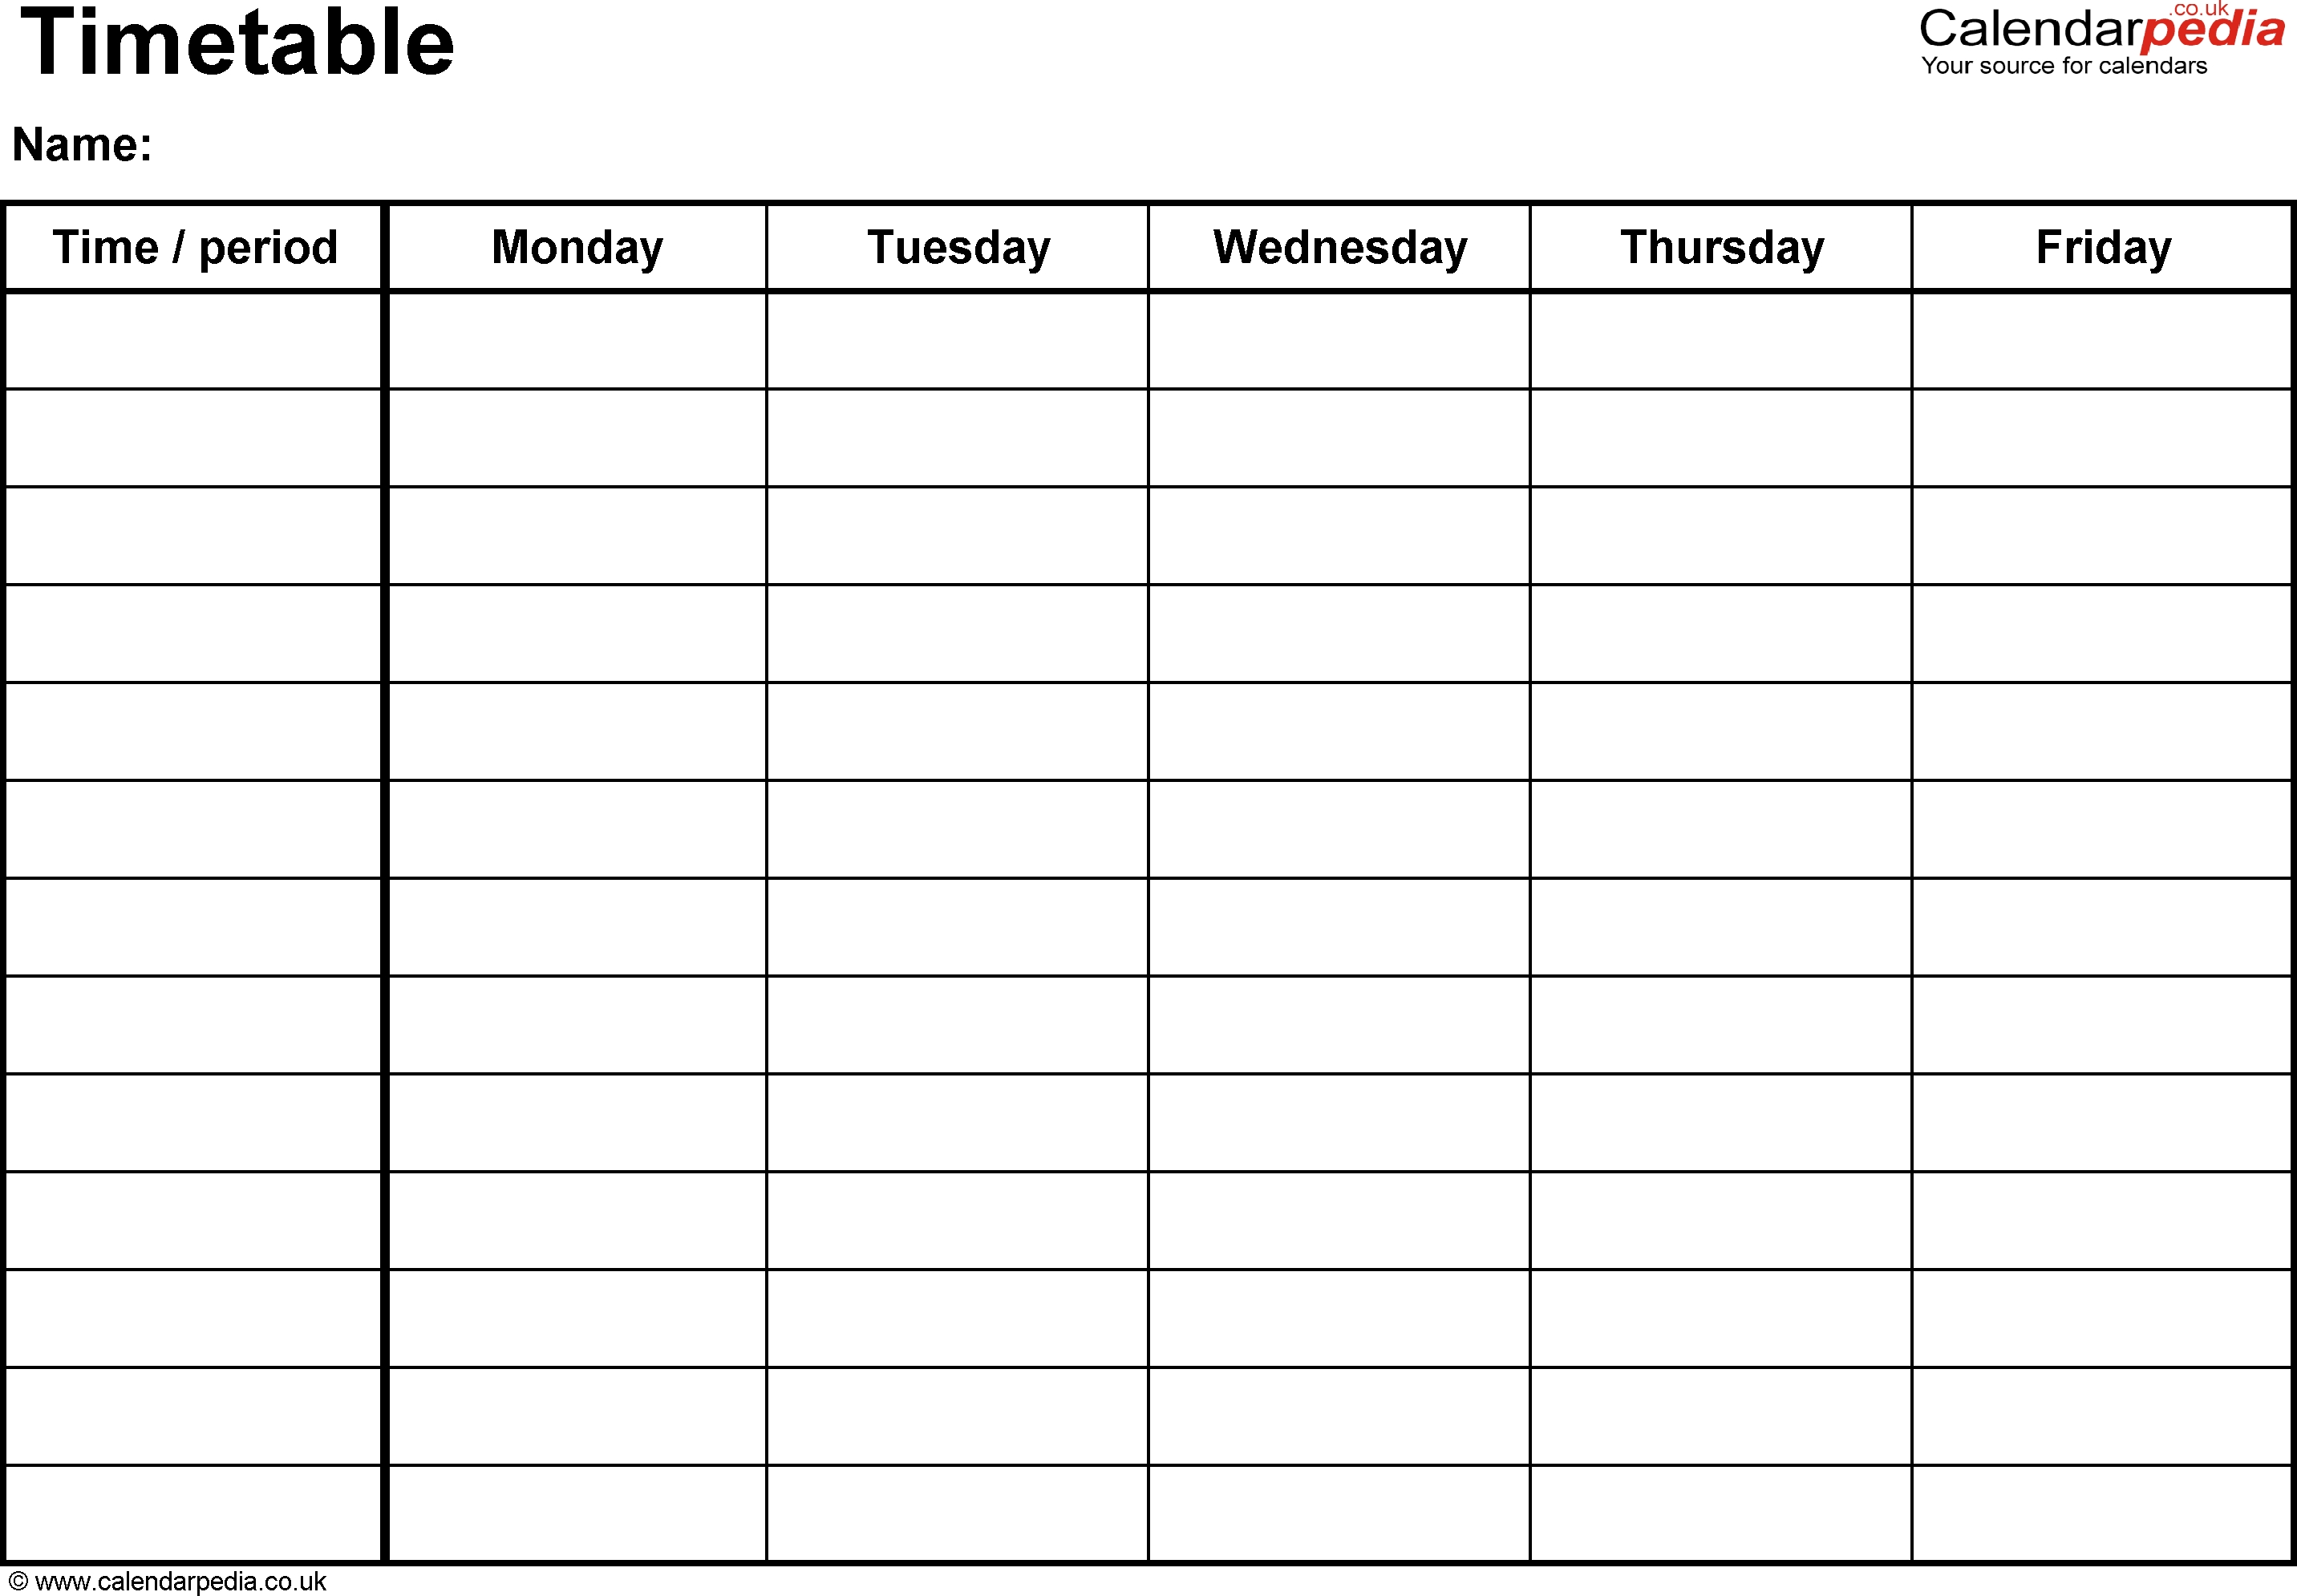 Timetables As Free Printable Templates For Microsoft Excel with regard to Template For Monday Through Friday School Schedule